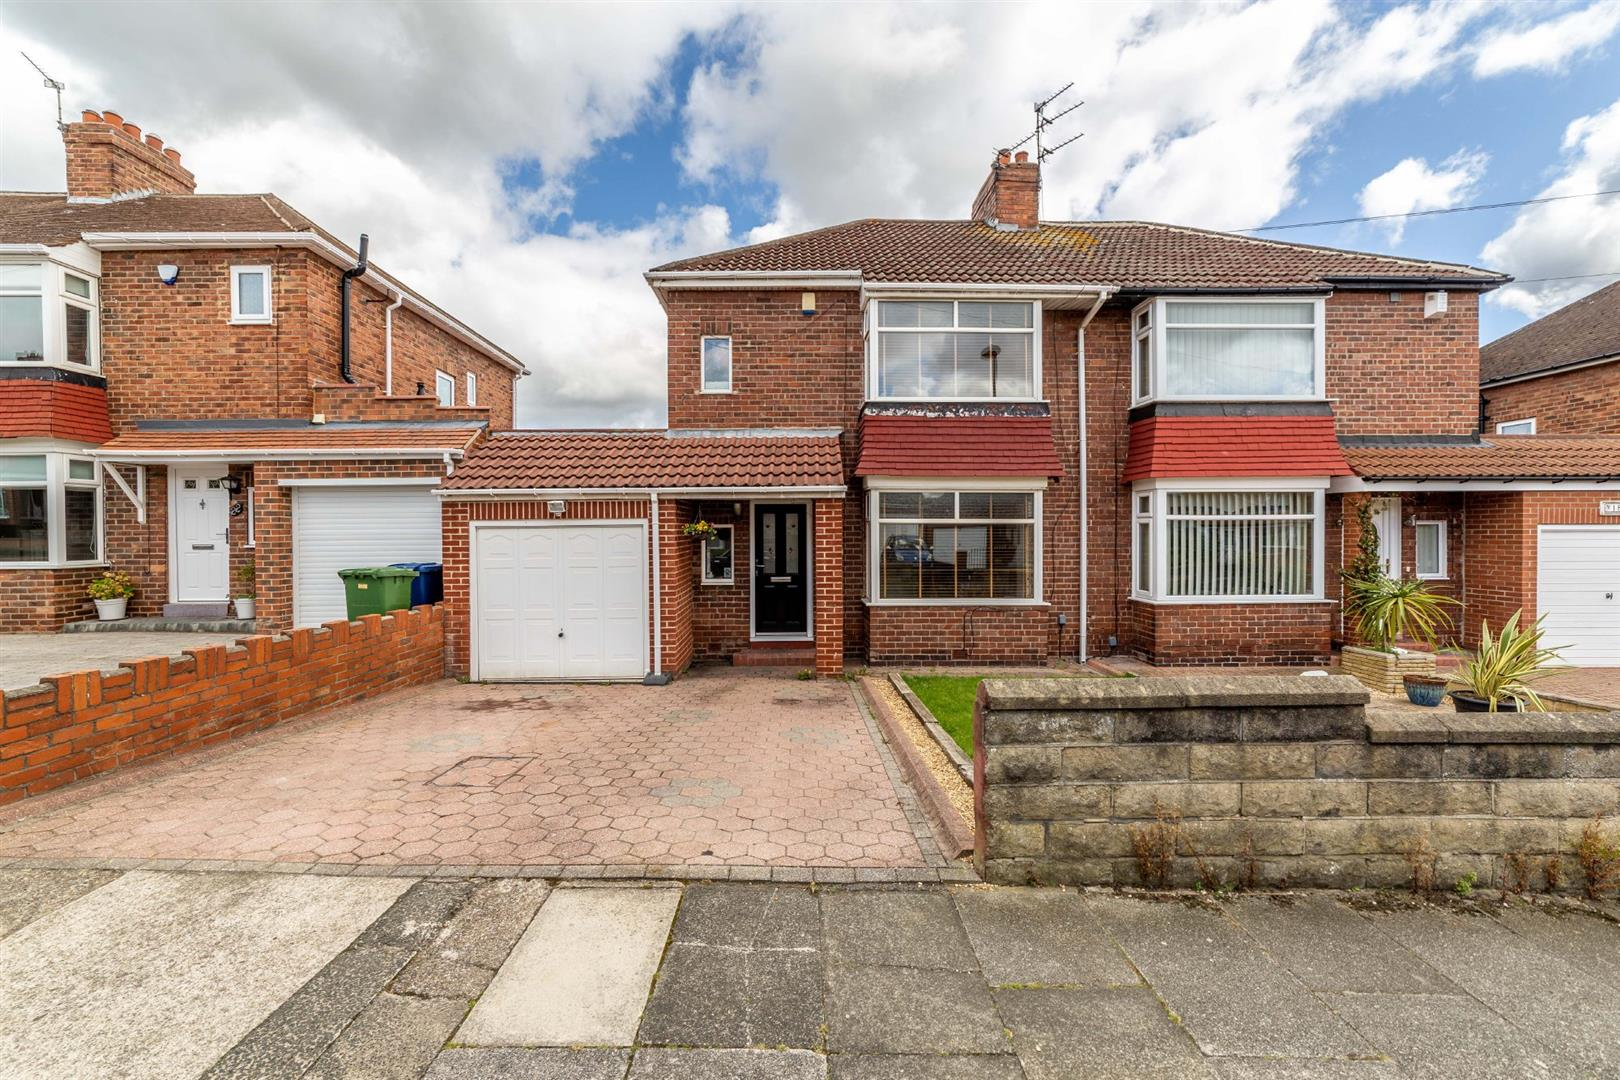 2 bed semi-detached house for sale in Newcastle Upon Tyne, NE7 7RT - Property Image 1